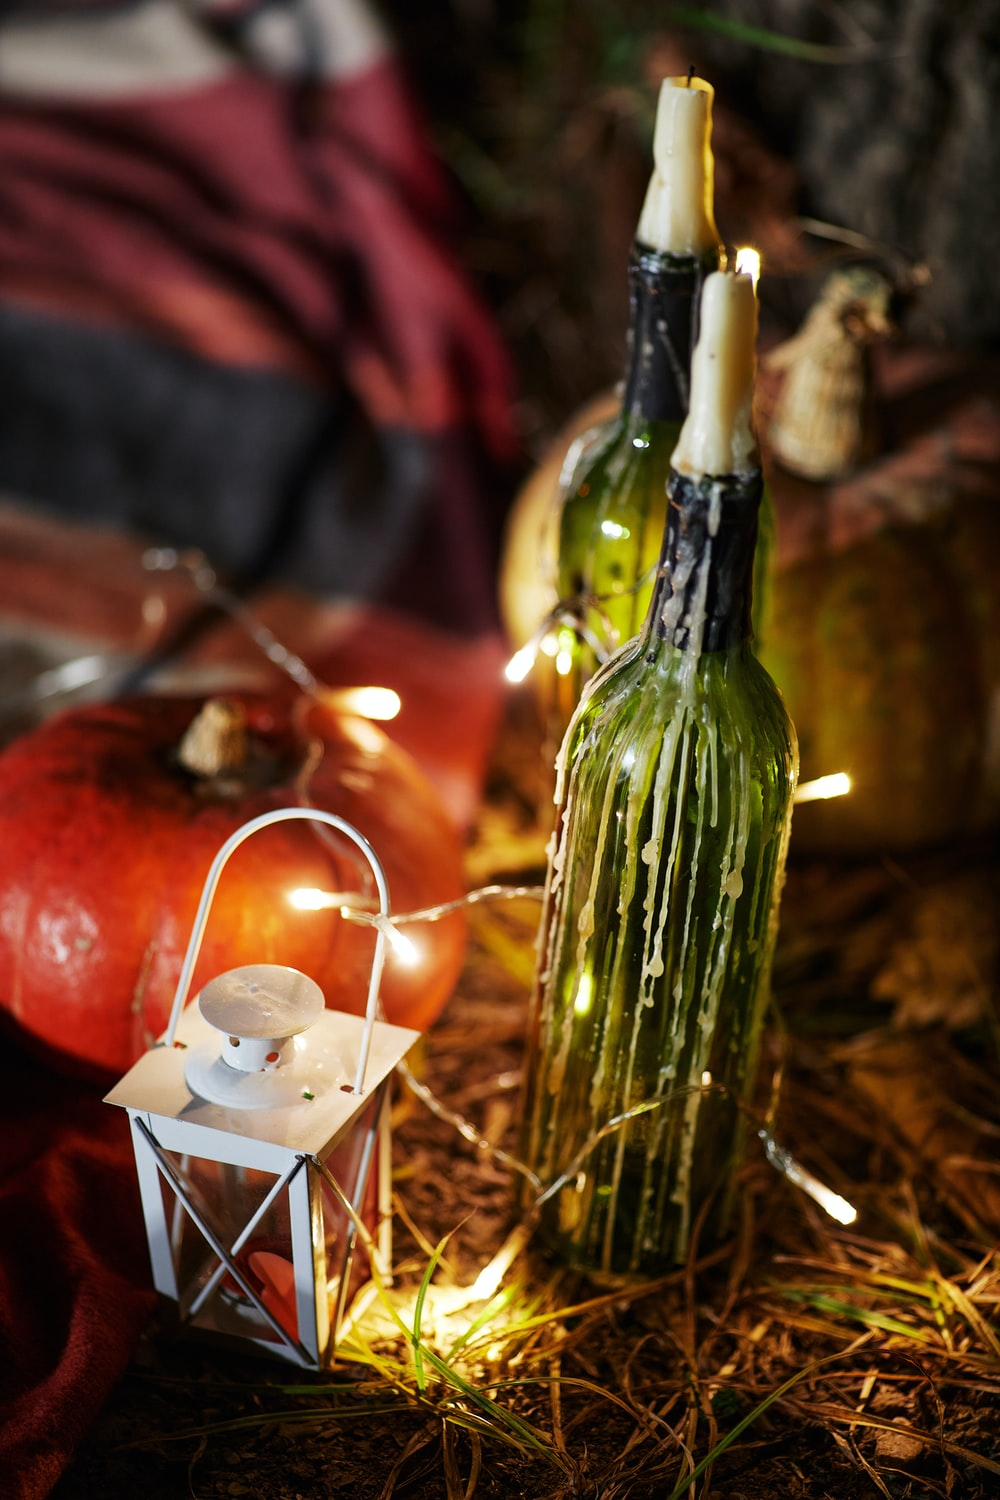 green glass bottle beside lighted candle